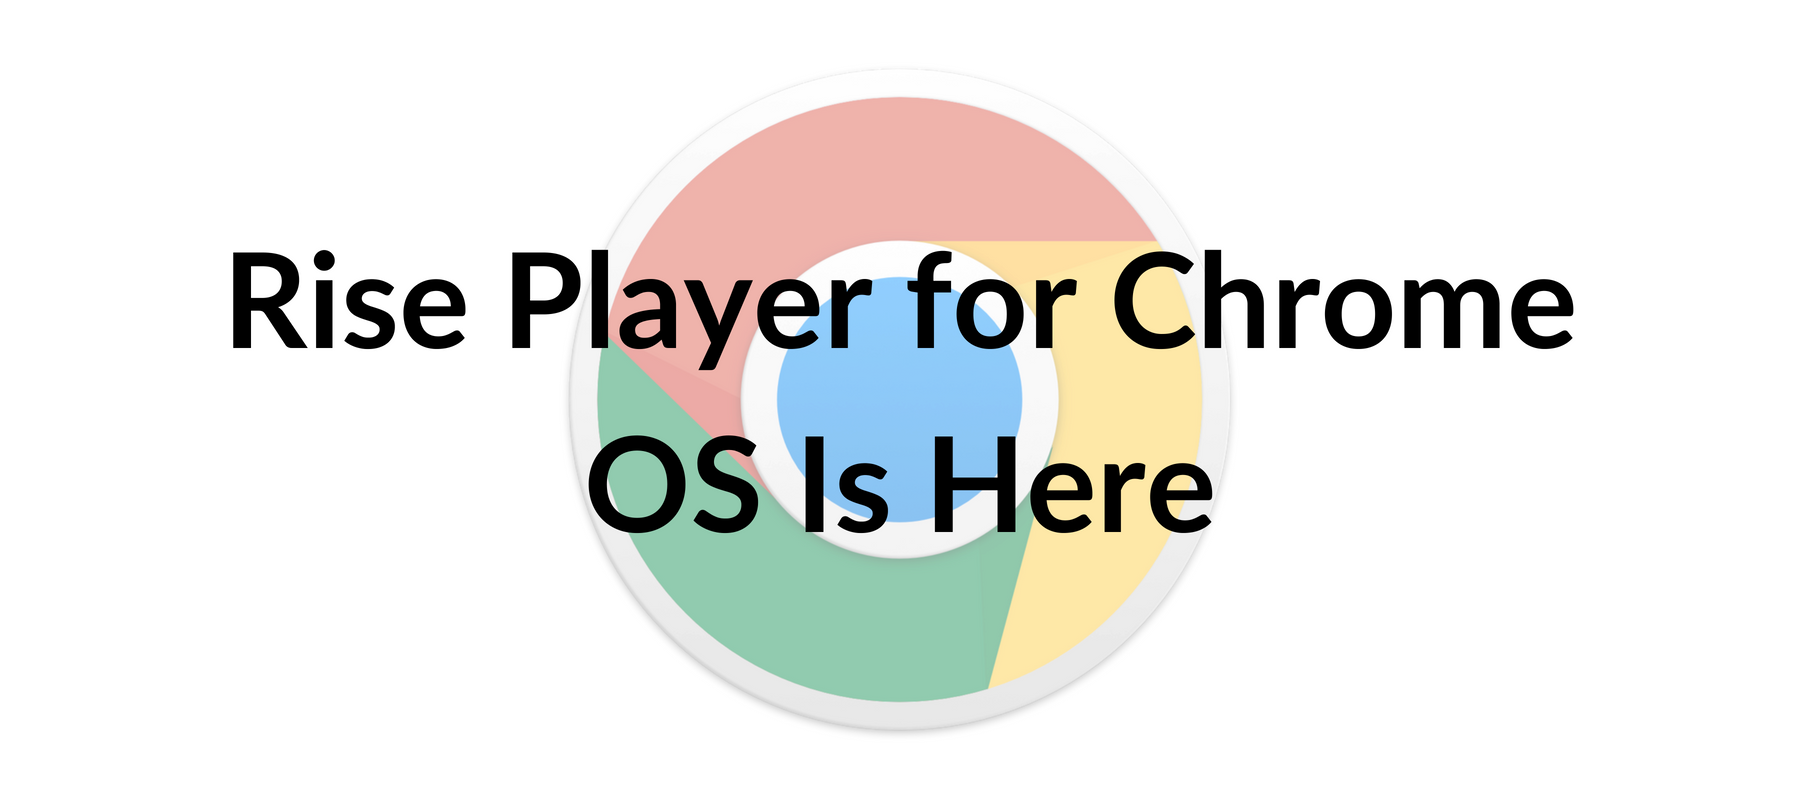 Rise Player for Chrome OS Is Here